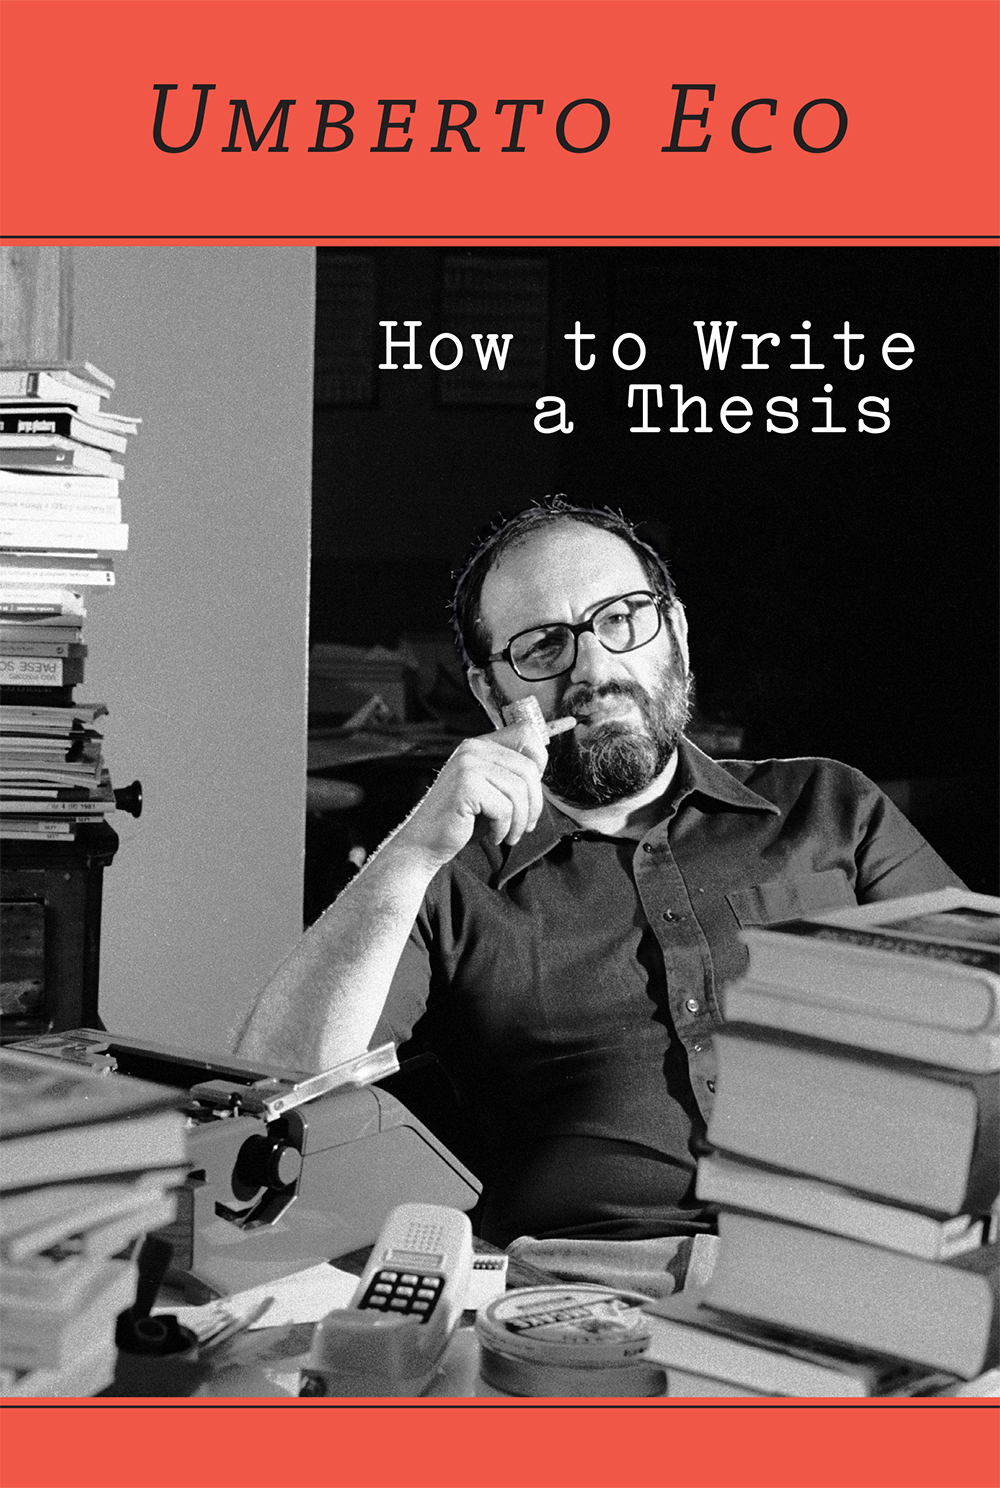 review of umberto eco how to write a thesis ecos echoes